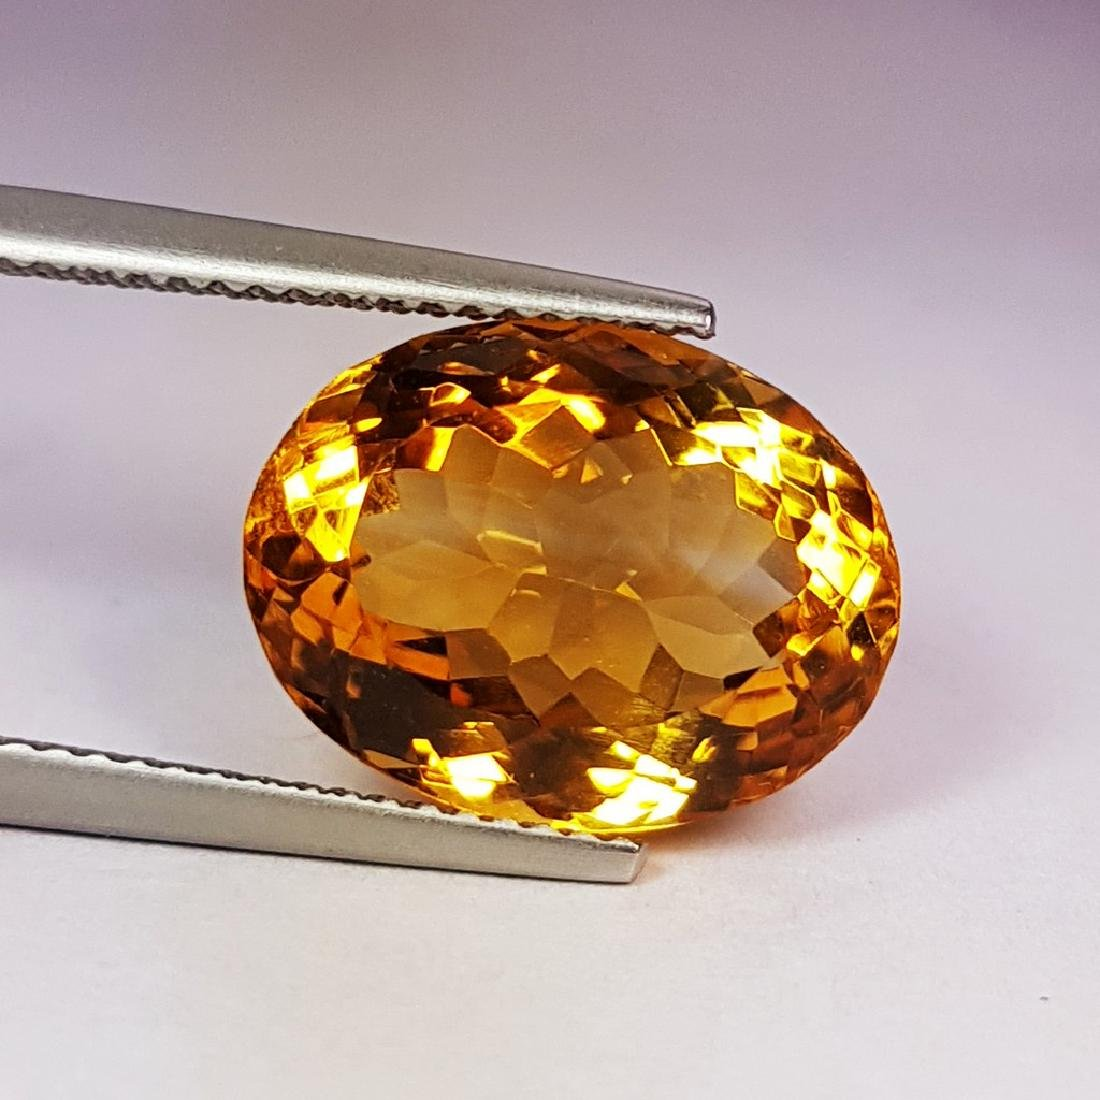 Marvelous Oval Cut Natural Citrine - 7.84 ct